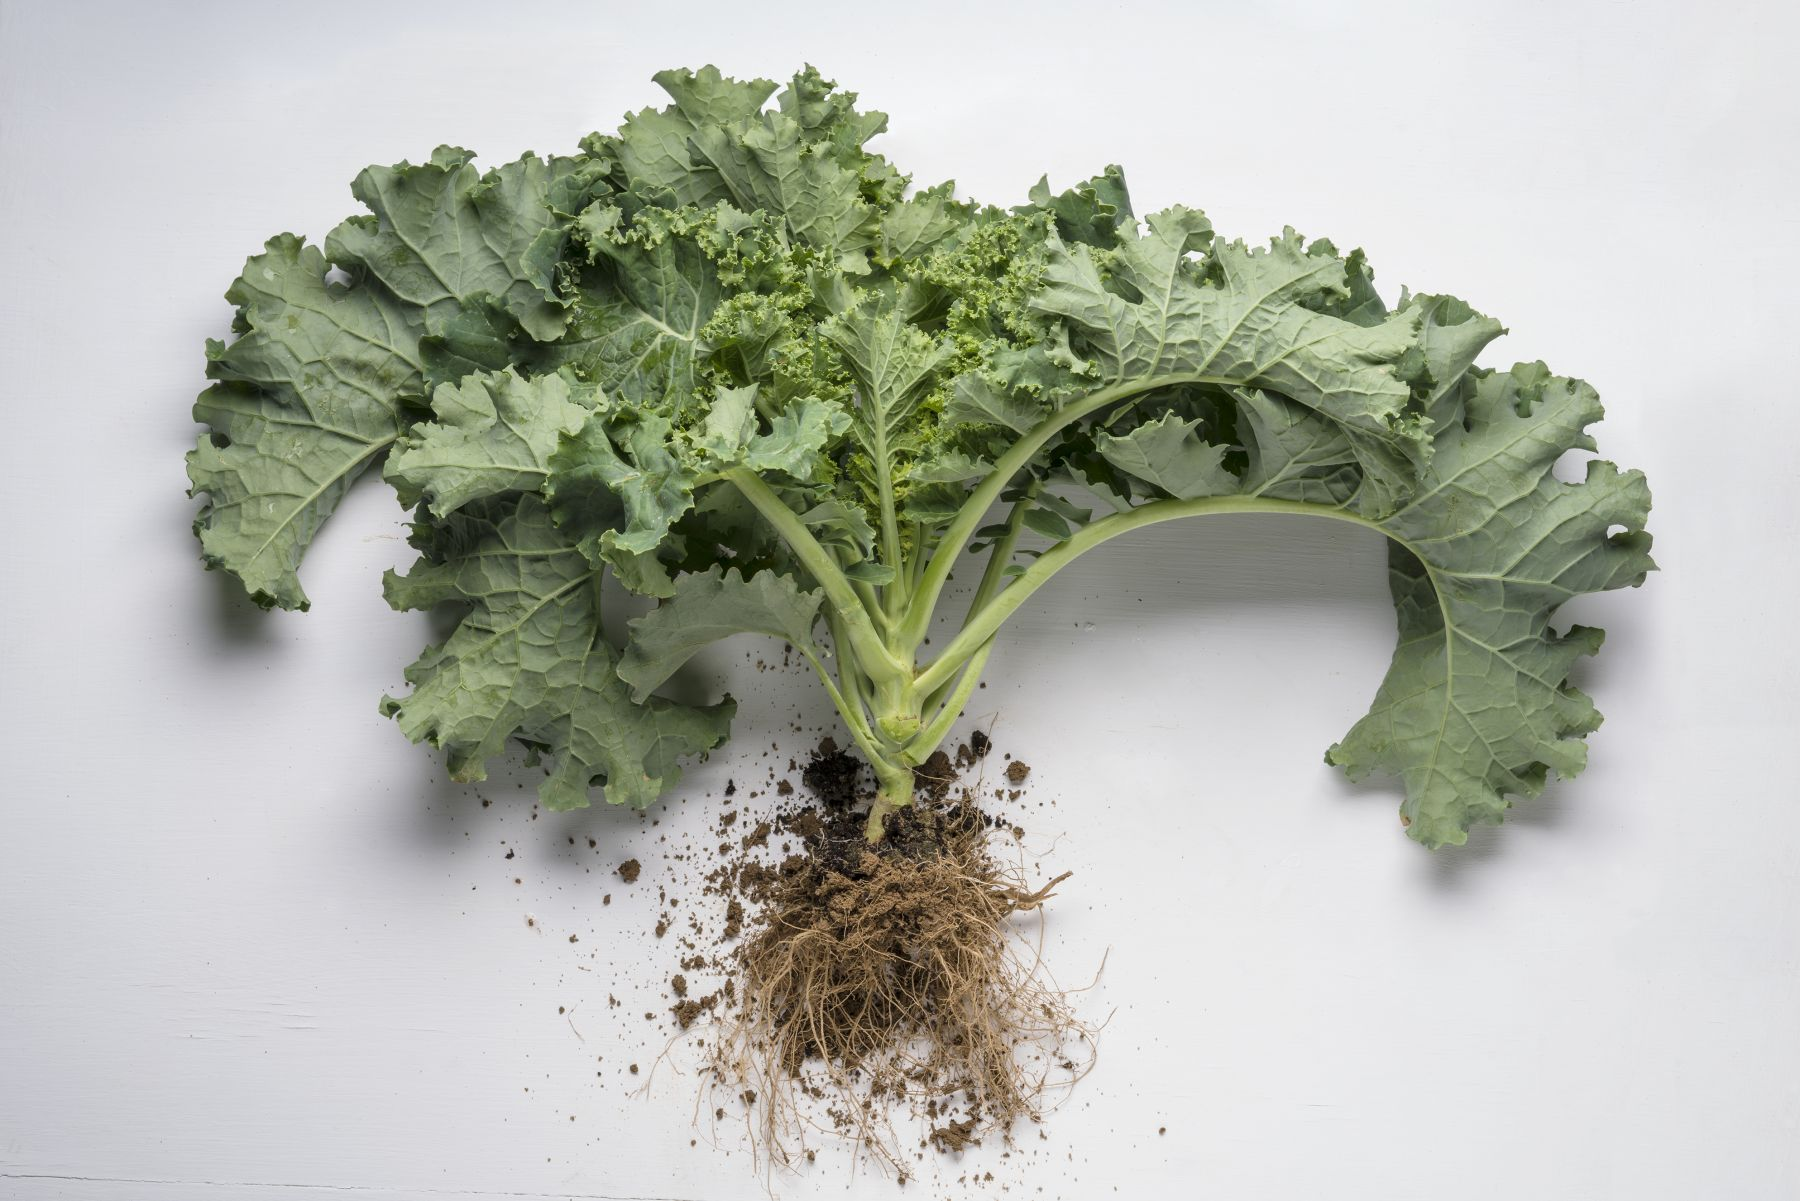 Kale plant with roots